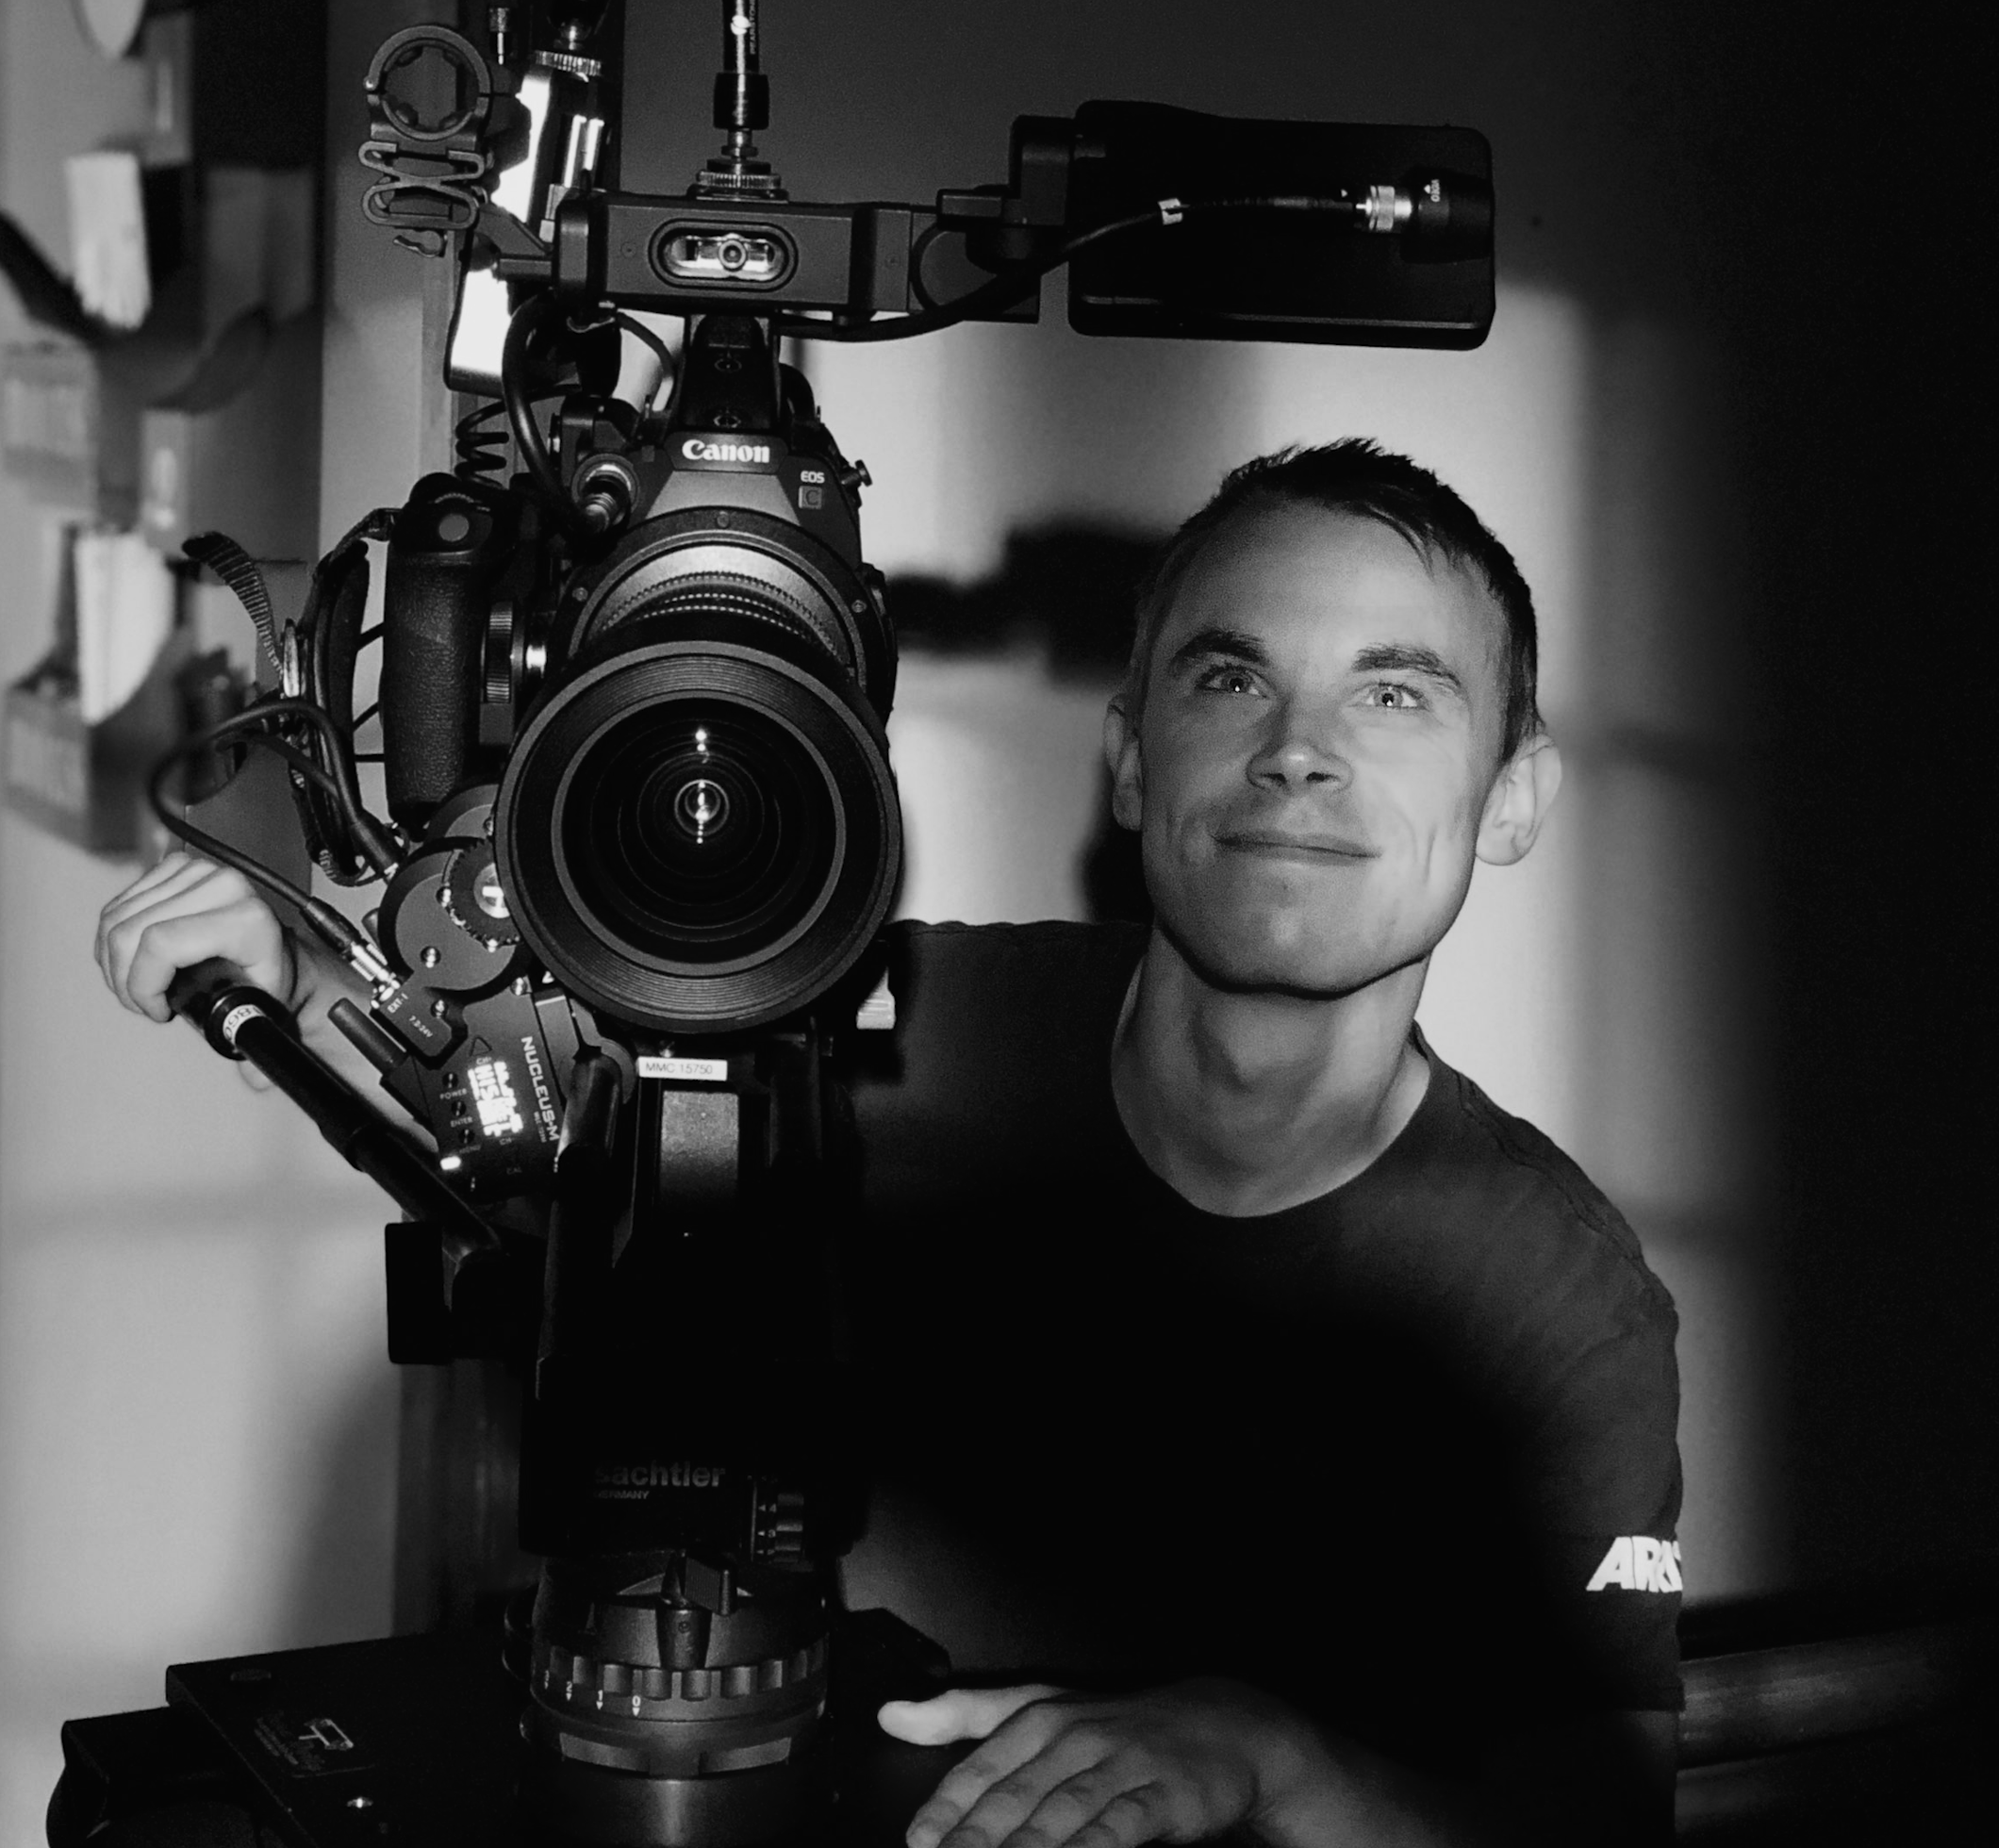 - Alexander Lakin is a freelance cinematographer living in Chicago, IL. Lakin studied at Loyola University Chicago through their International Film & Media Production program. He was called to pursue cinematography after completing a lighting assignment based on Tomas Alfredson's